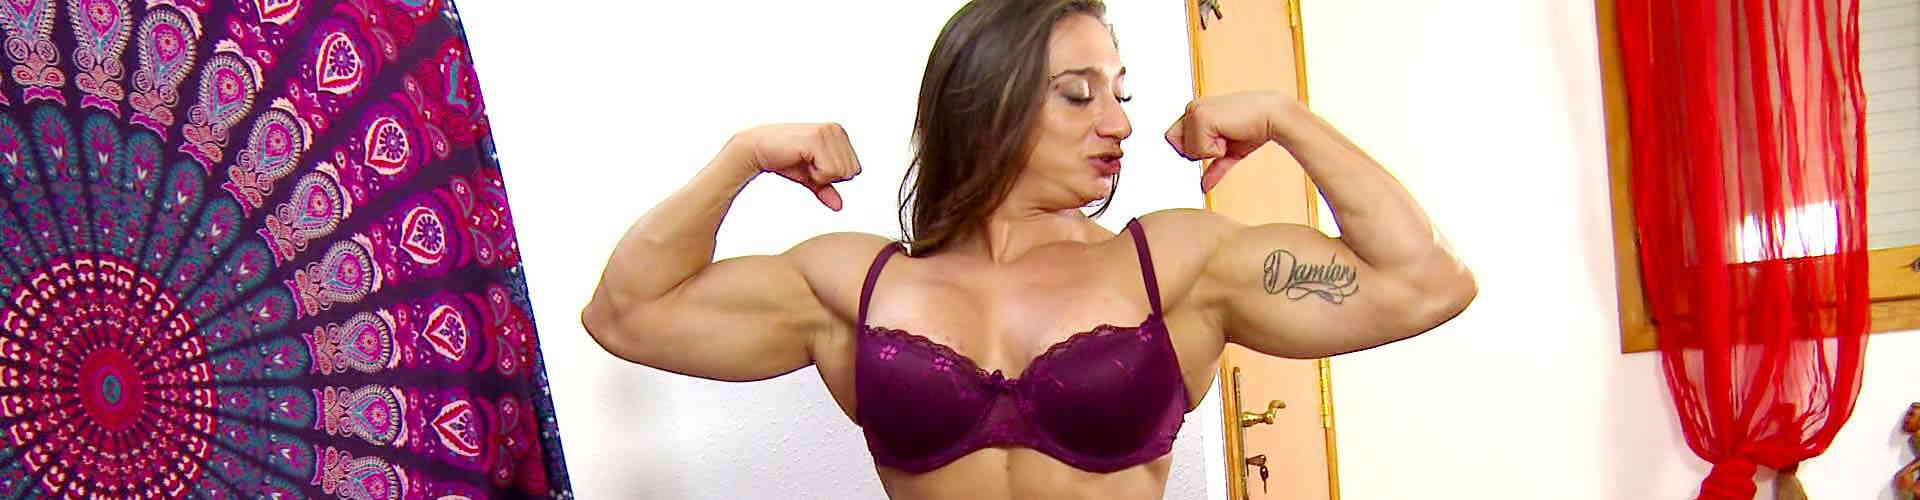 Image Hot muscle Woman fucking like a crazy horse